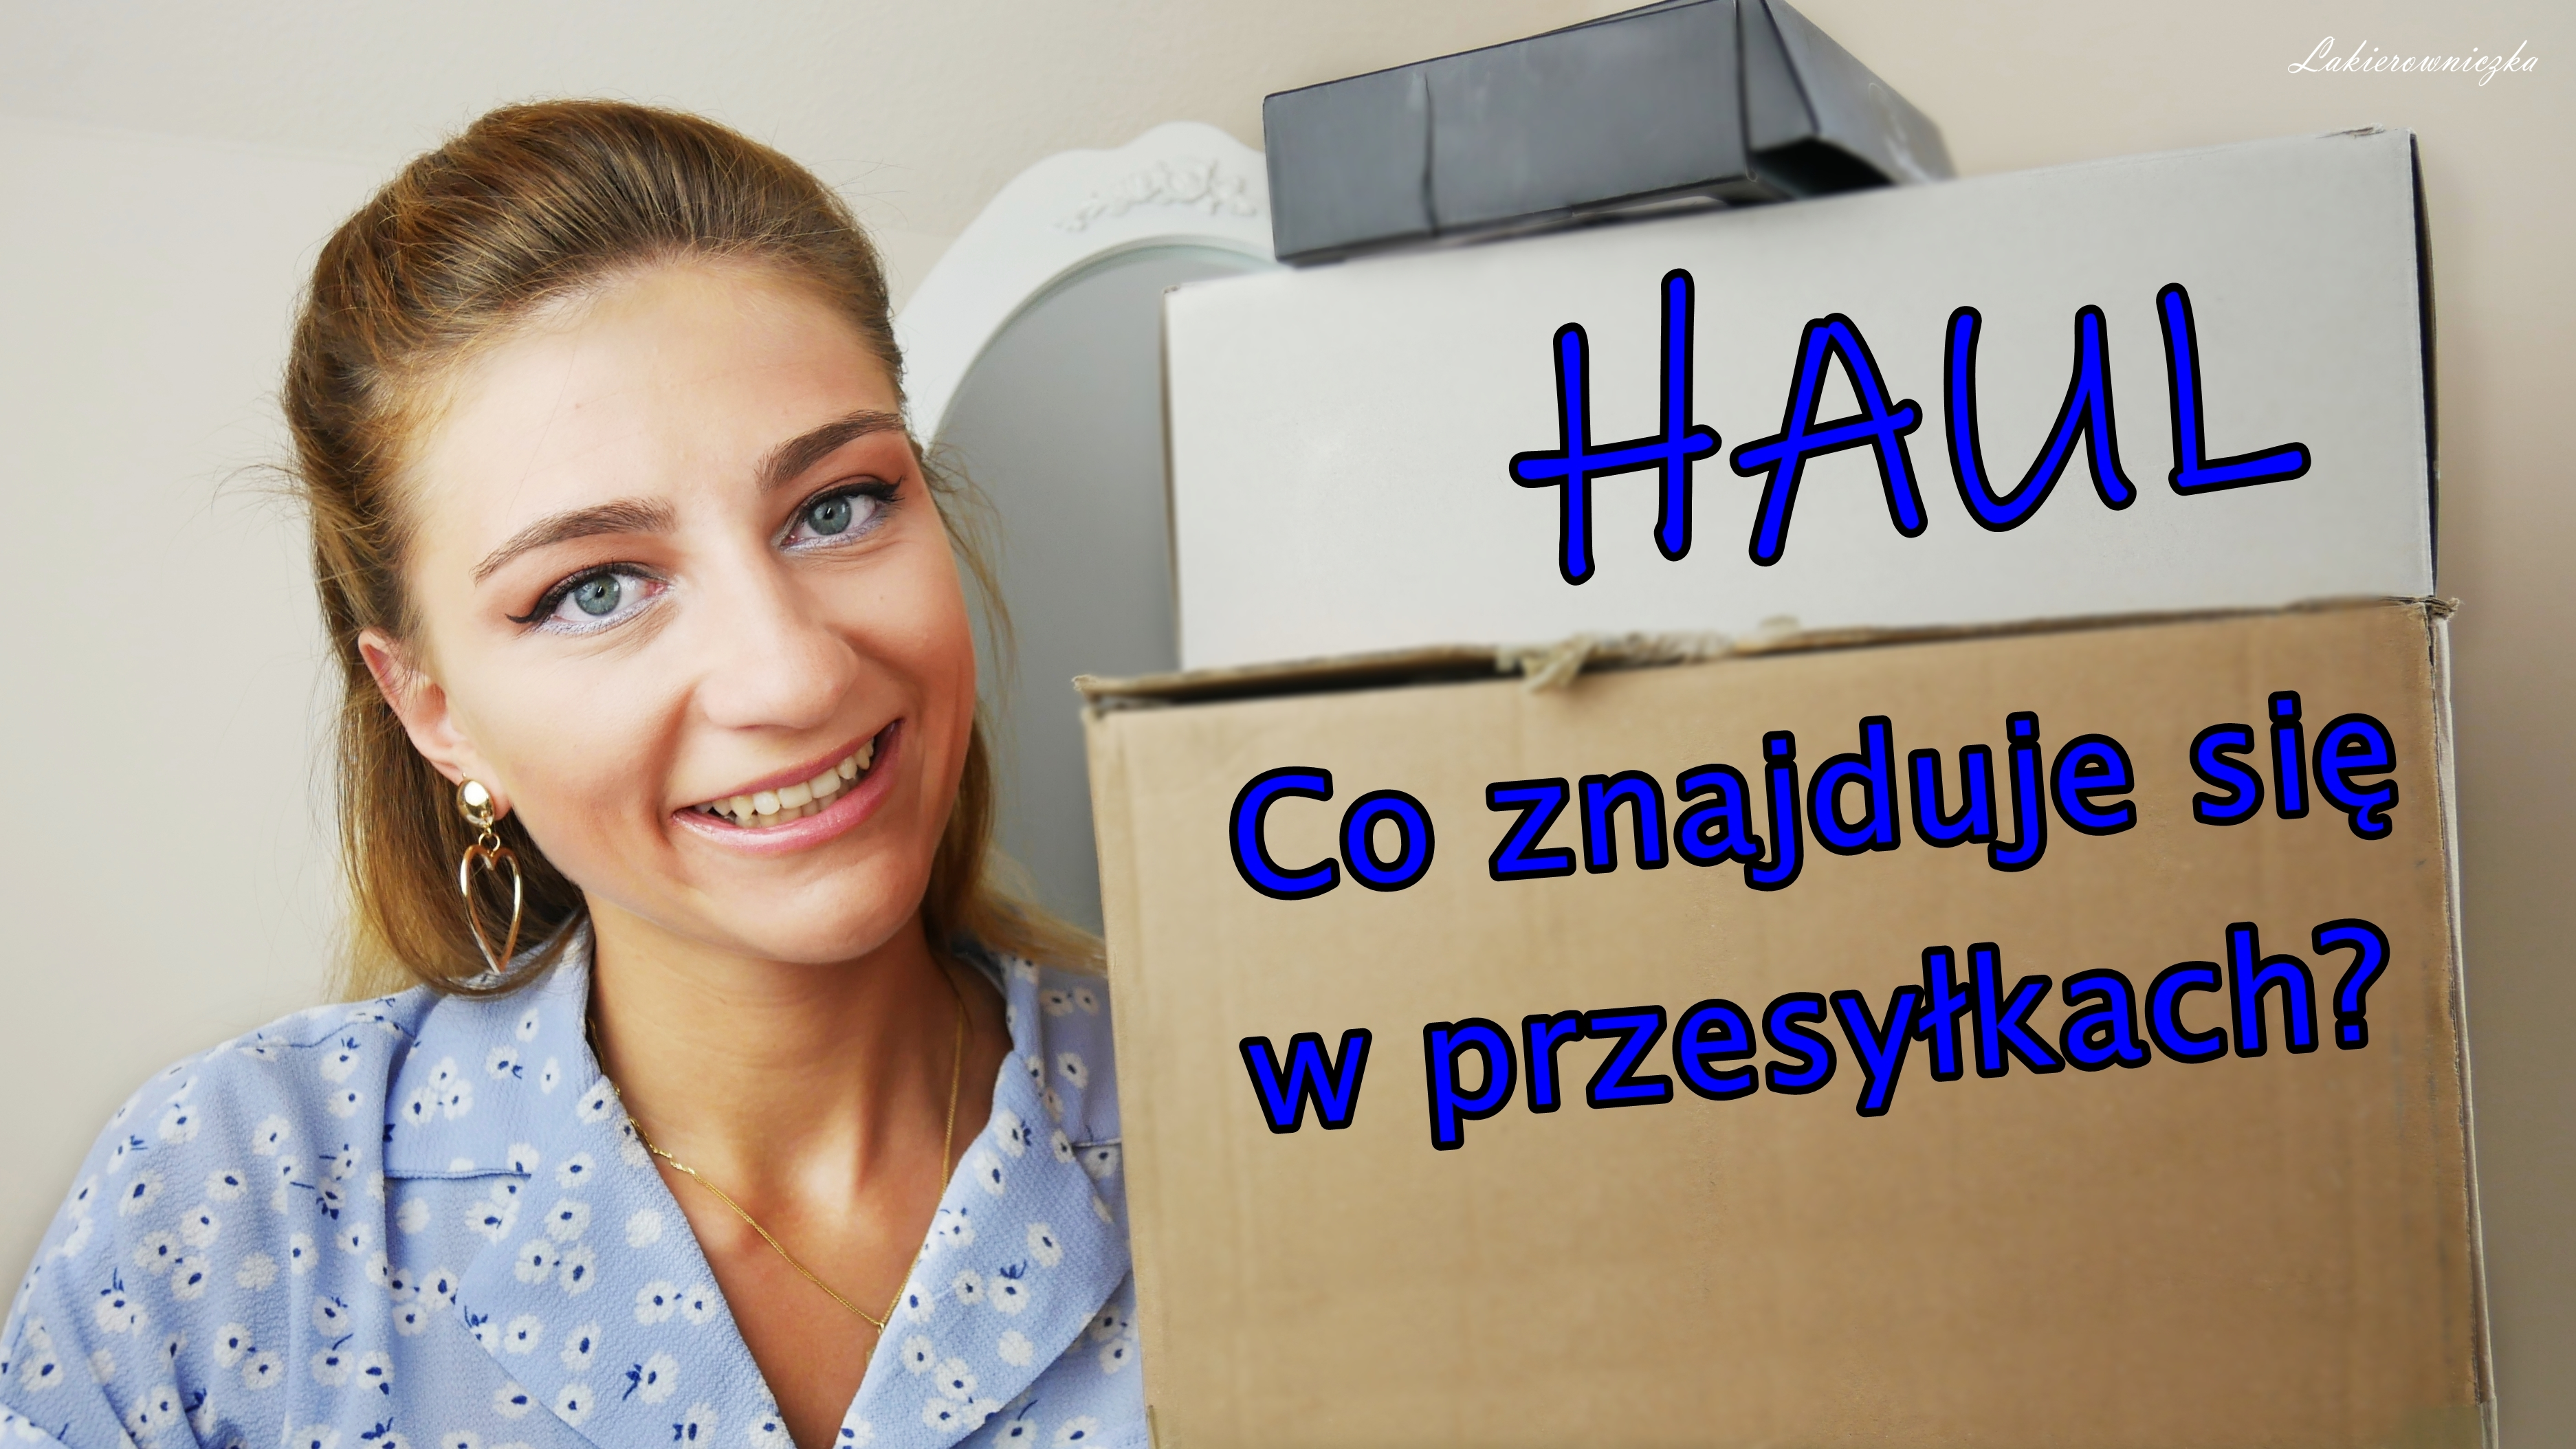 HAUL Co znajuje się w paczkach?haul-nowosci-otwieramy-paczki-PR-Ingrid-matte-and-glam-Madam-Bielenda-APIS-Vanuba-Aliexpress-Q&Q-Tolpa-Neess-Maga-OPI-Orly-Donegal-Essence-Nails-company-Raisin-B-loves-plates-Lakierowniczka